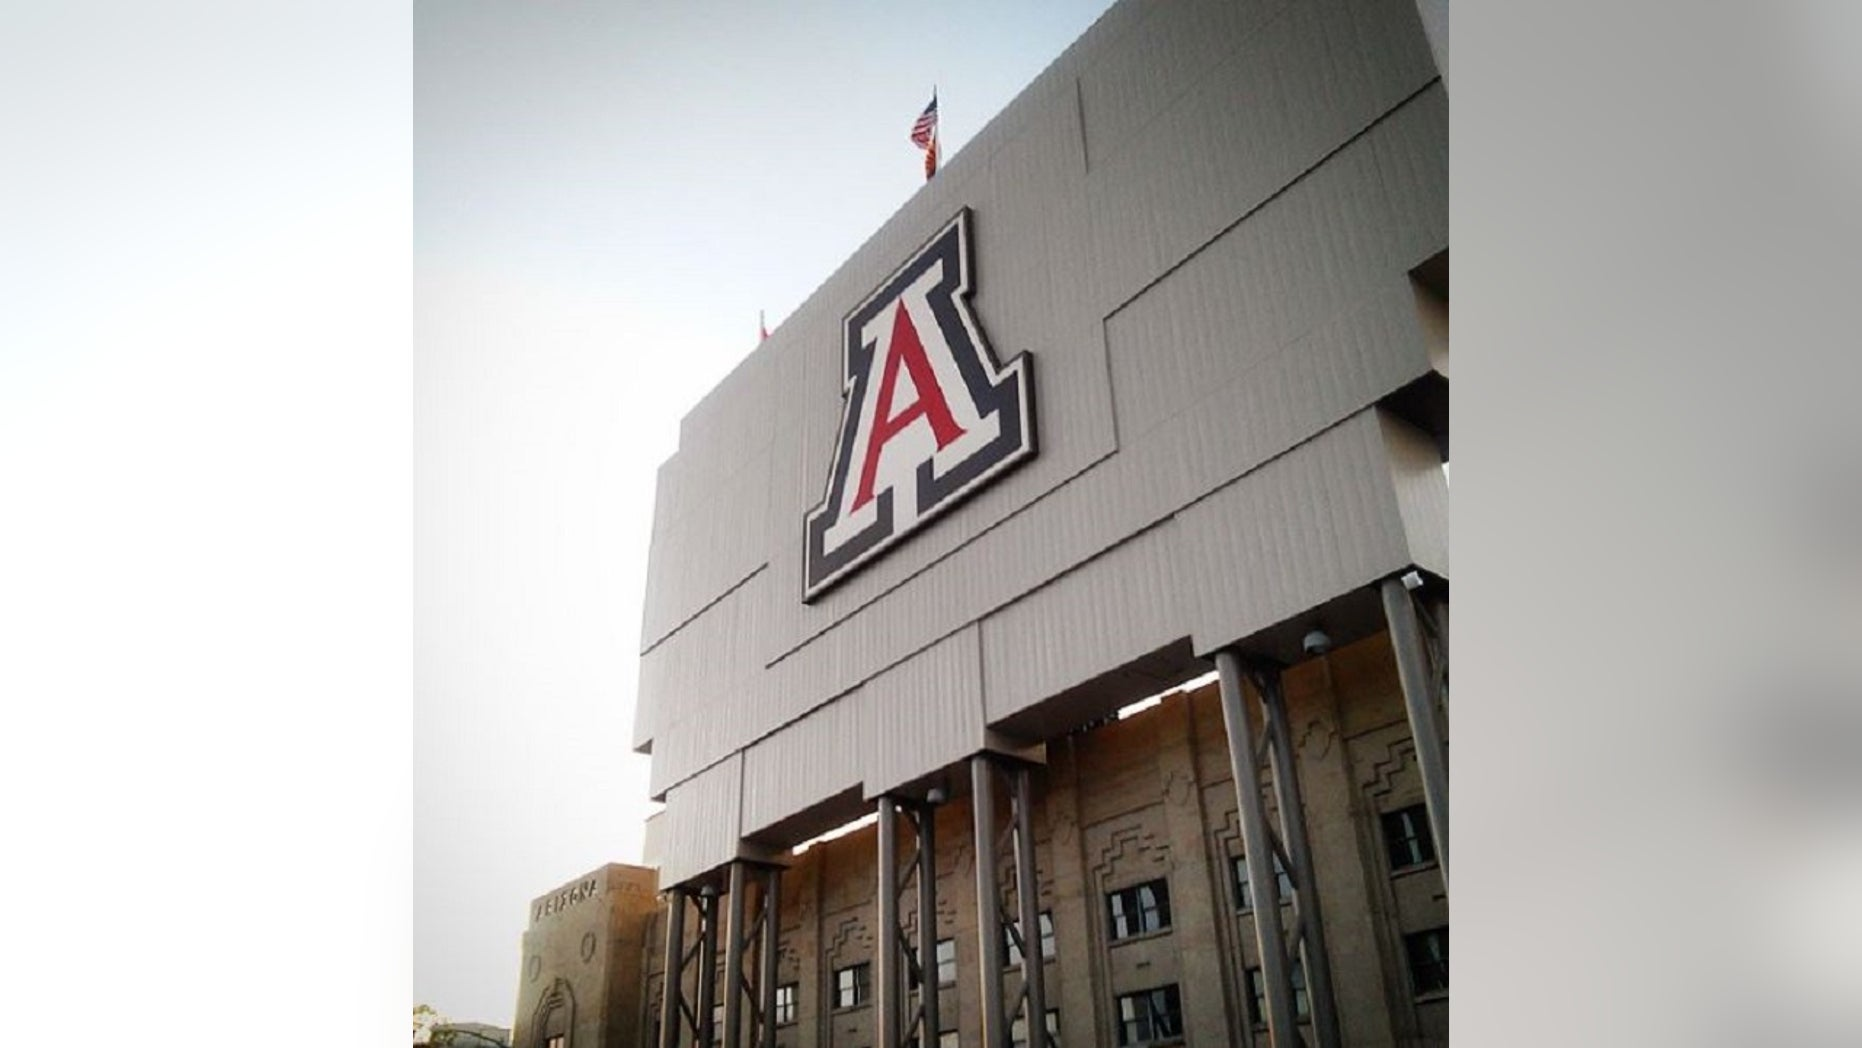 Dozens of University of Arizona professors are calling for the school to dropmisdemeanor charges against two students who protested against a visit by Border Patrol agents.